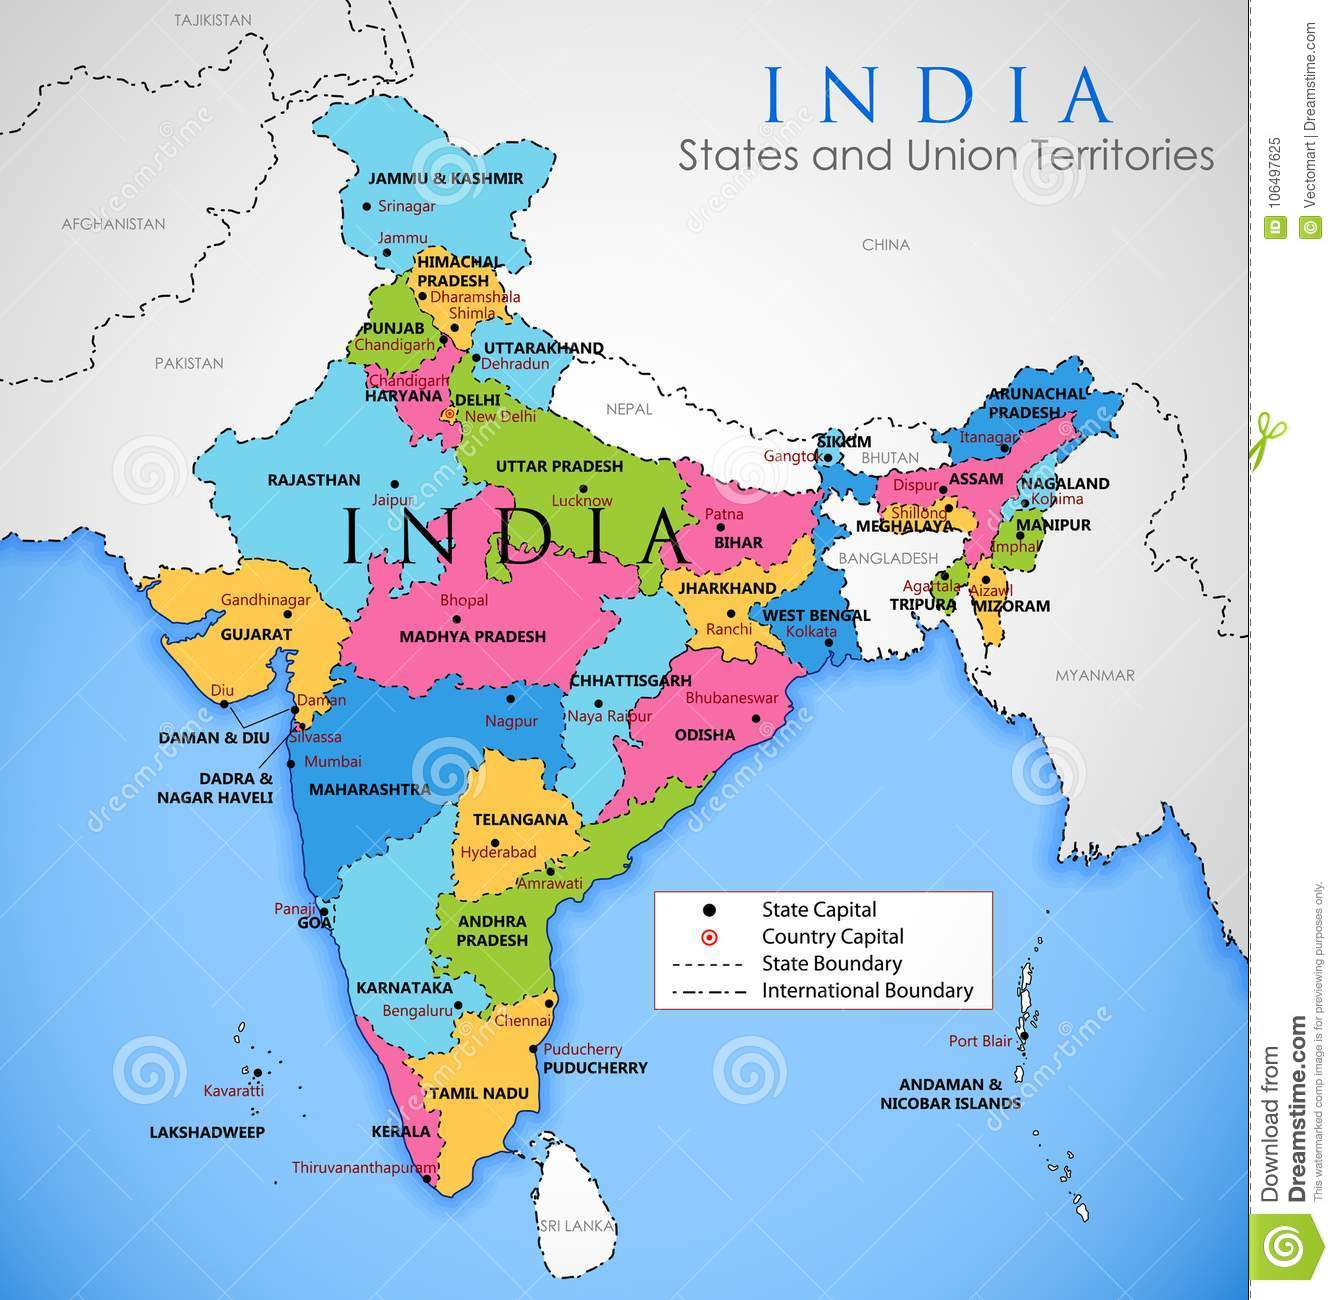 Detailed Map Of India Asia With All States And Country Boundary - A map with all the states